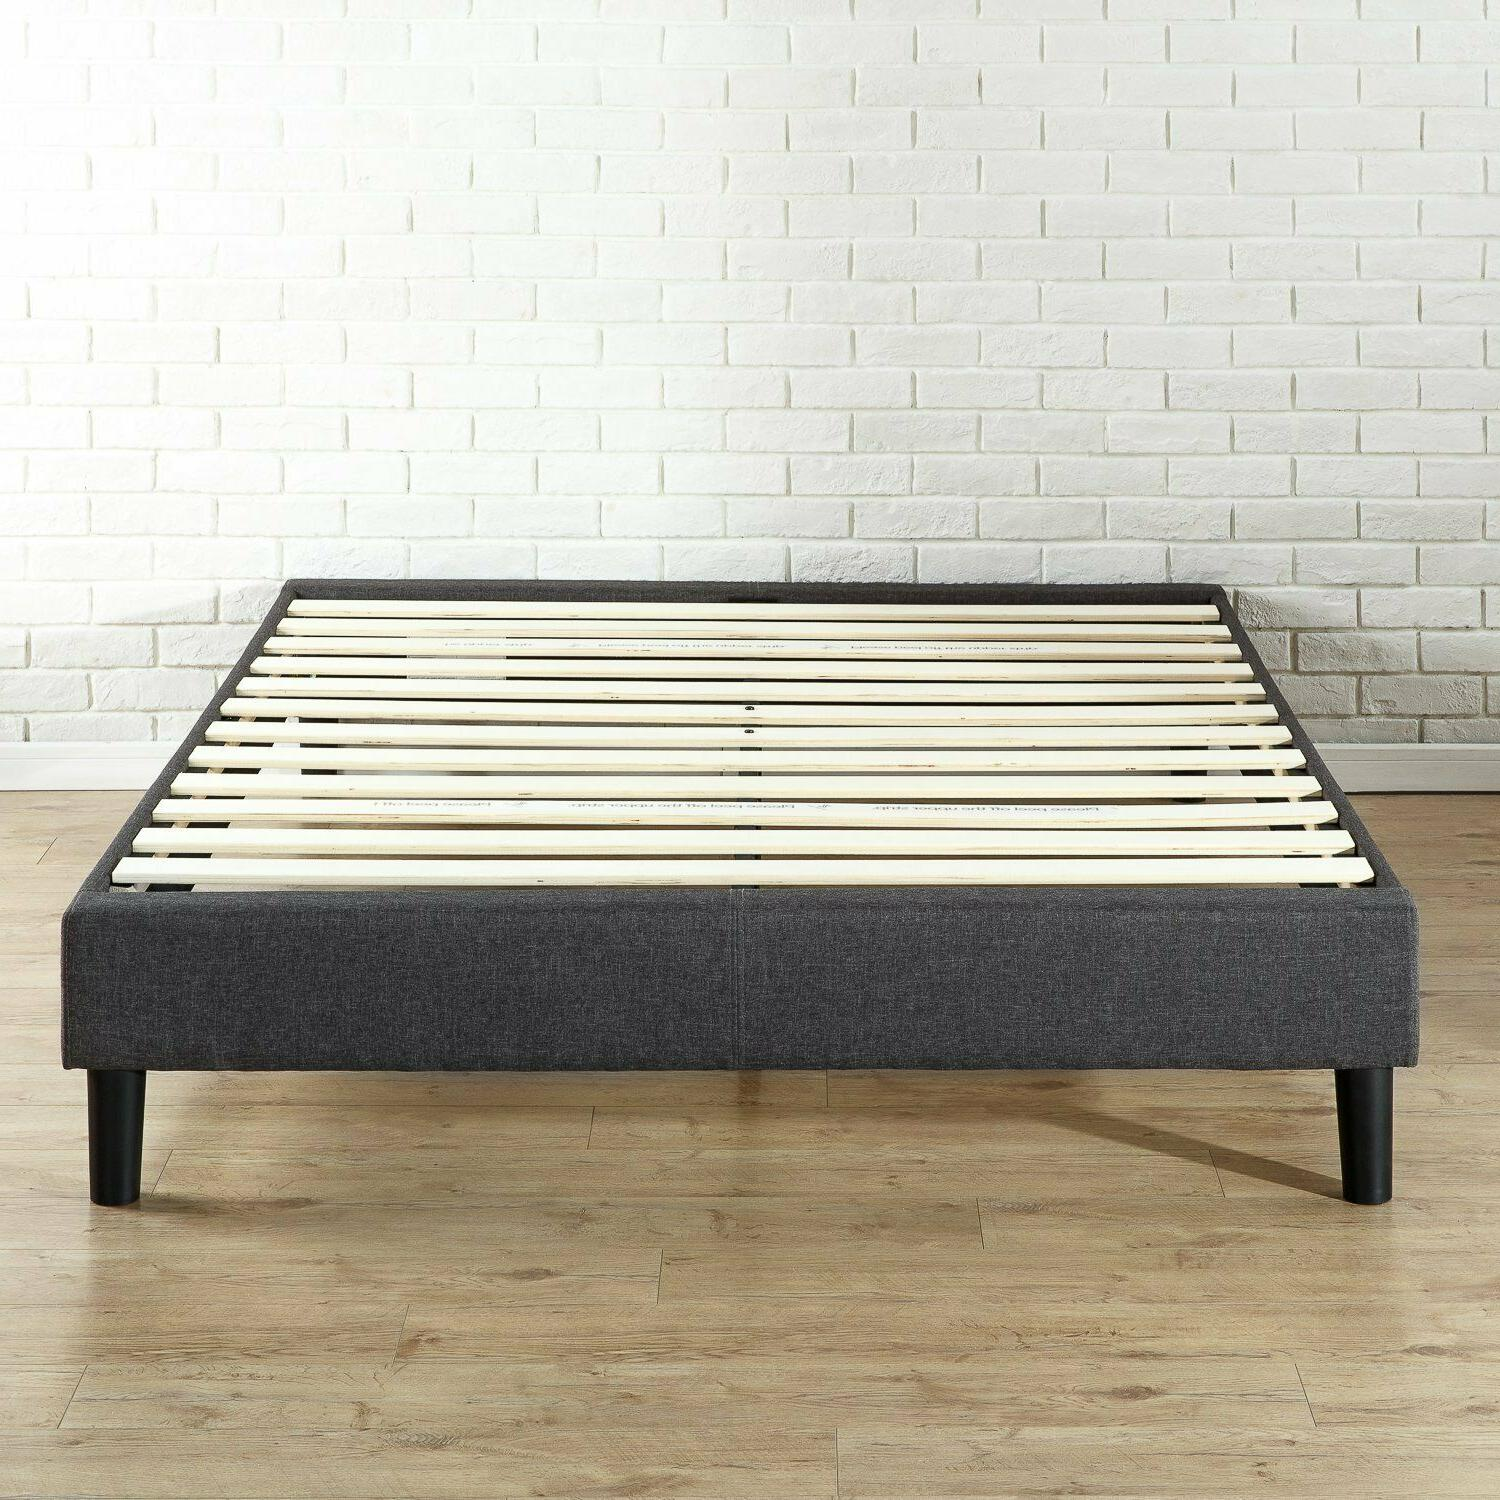 Zinus Bed Frame/Mattress Foundation, no